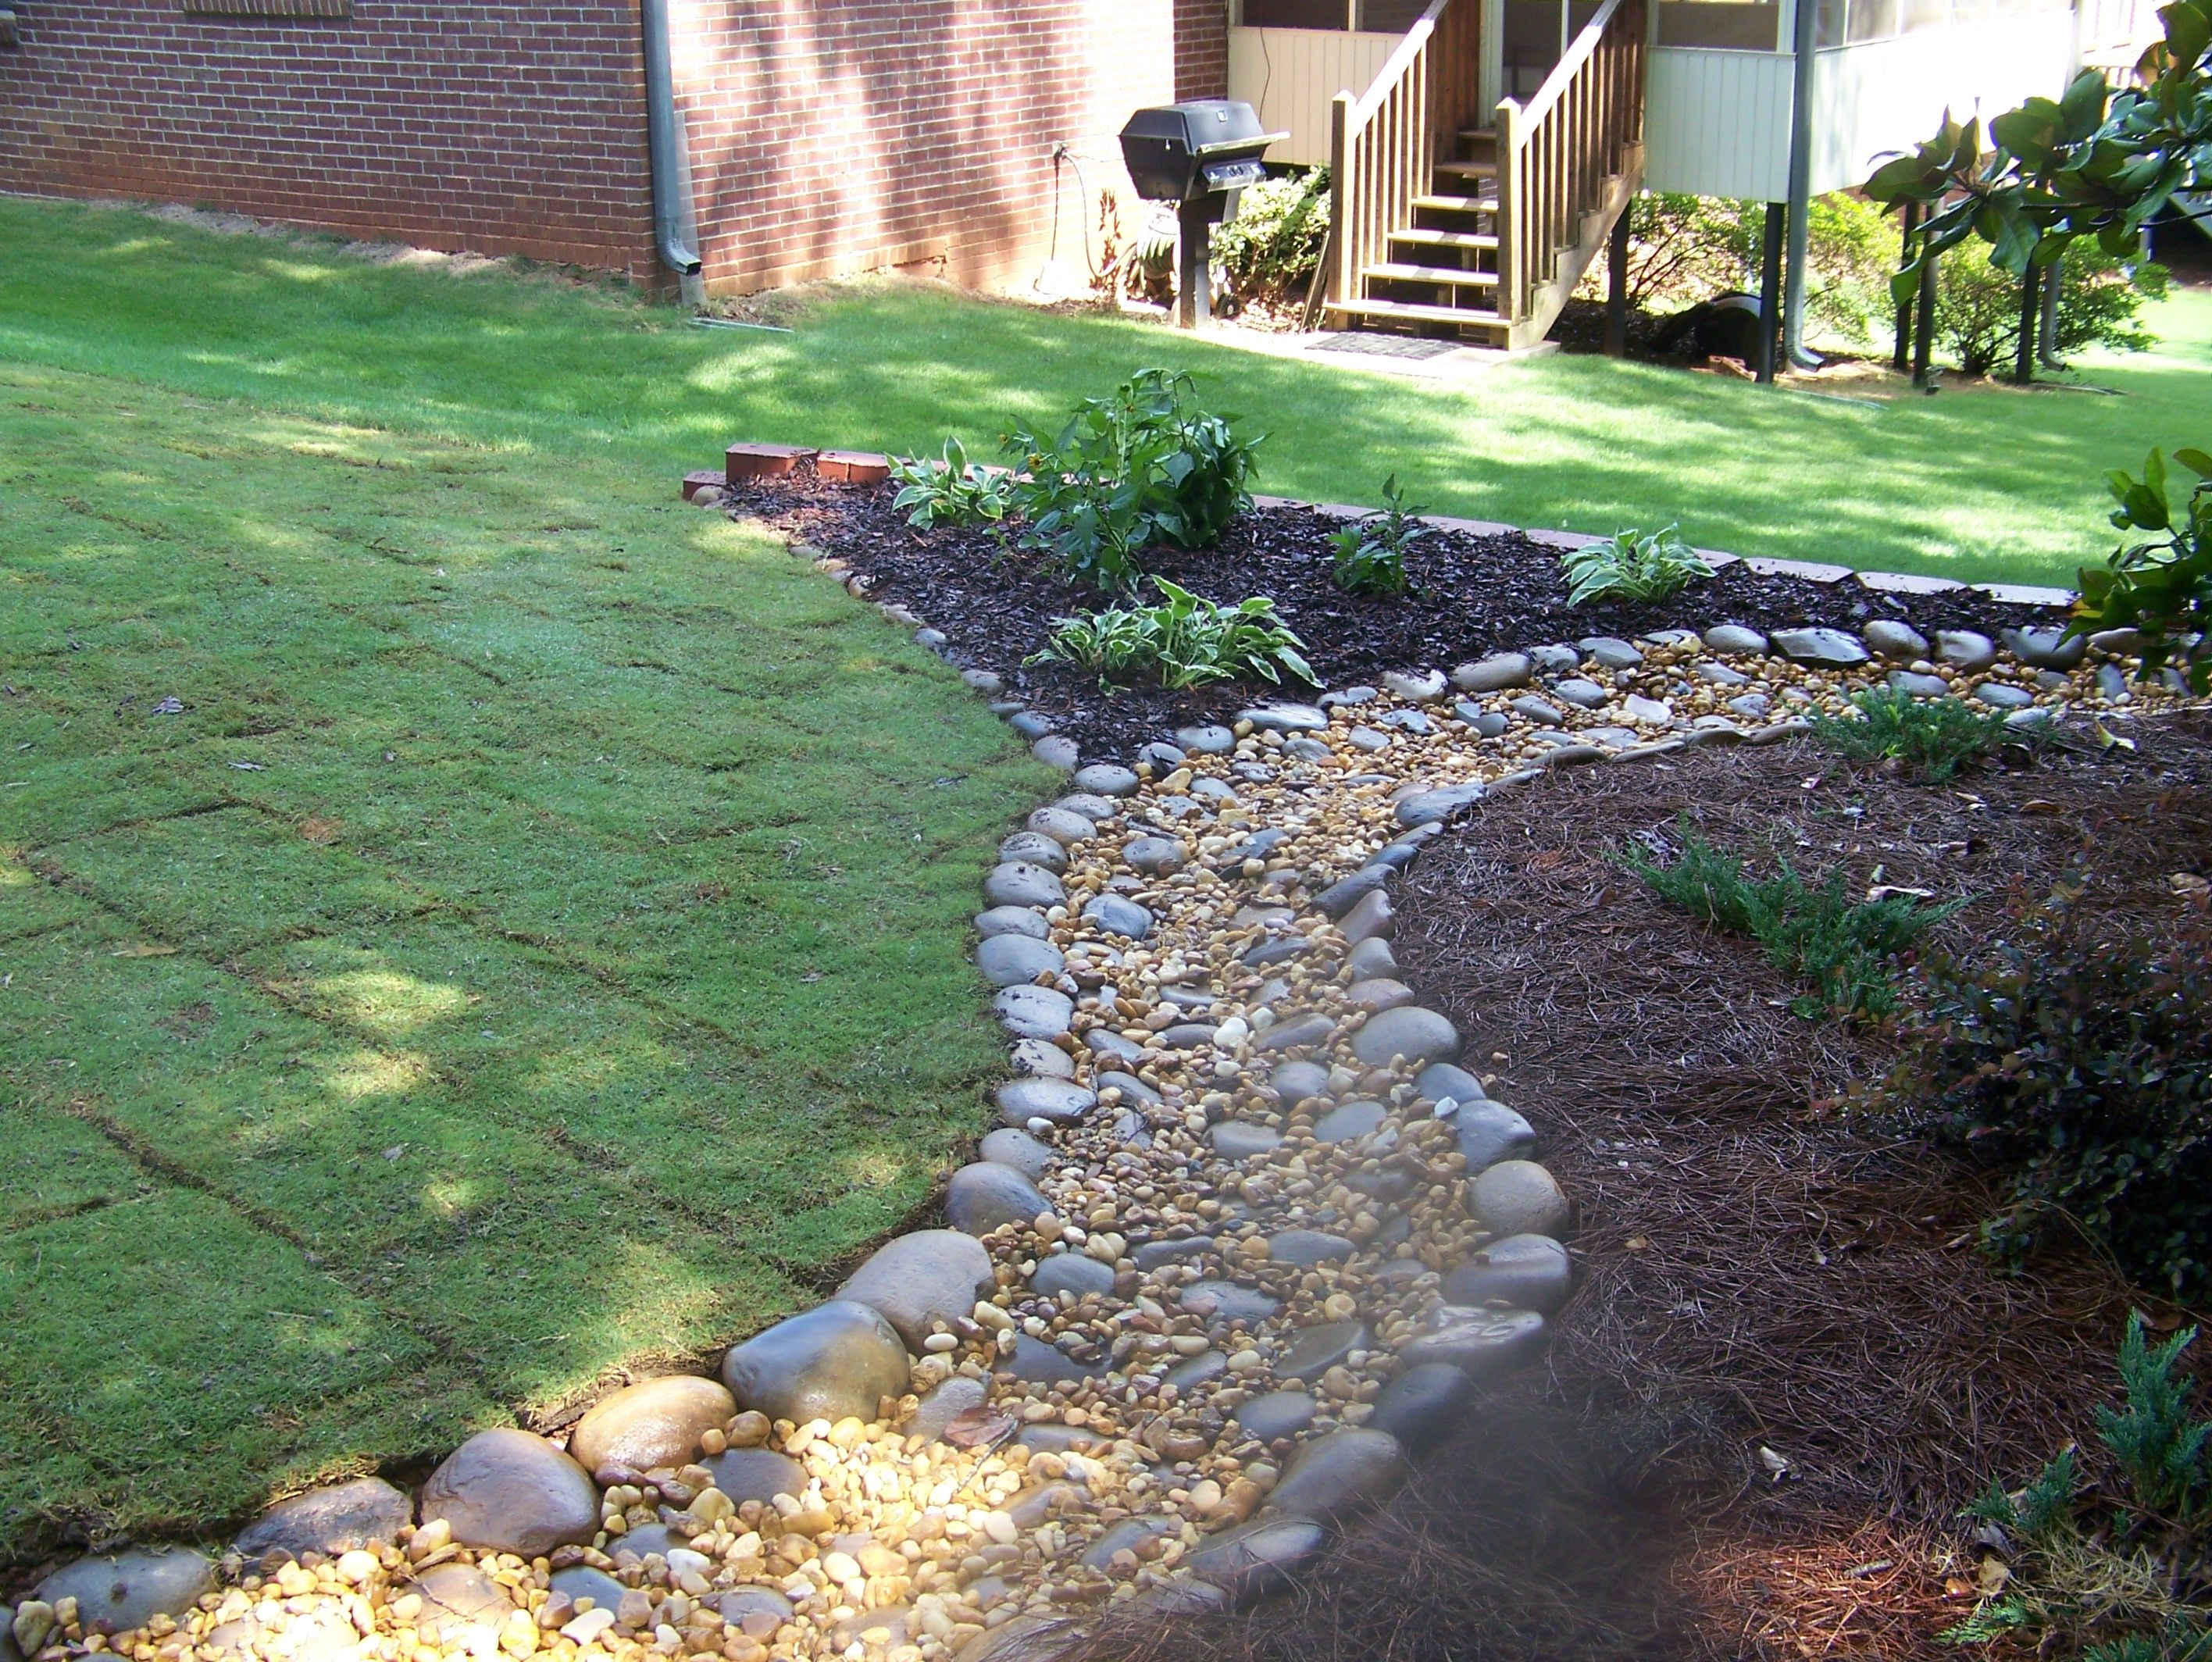 The nice thing about these river rock landscaping ideas is that they can be applied very fast certainly worth your time if you want value and quality